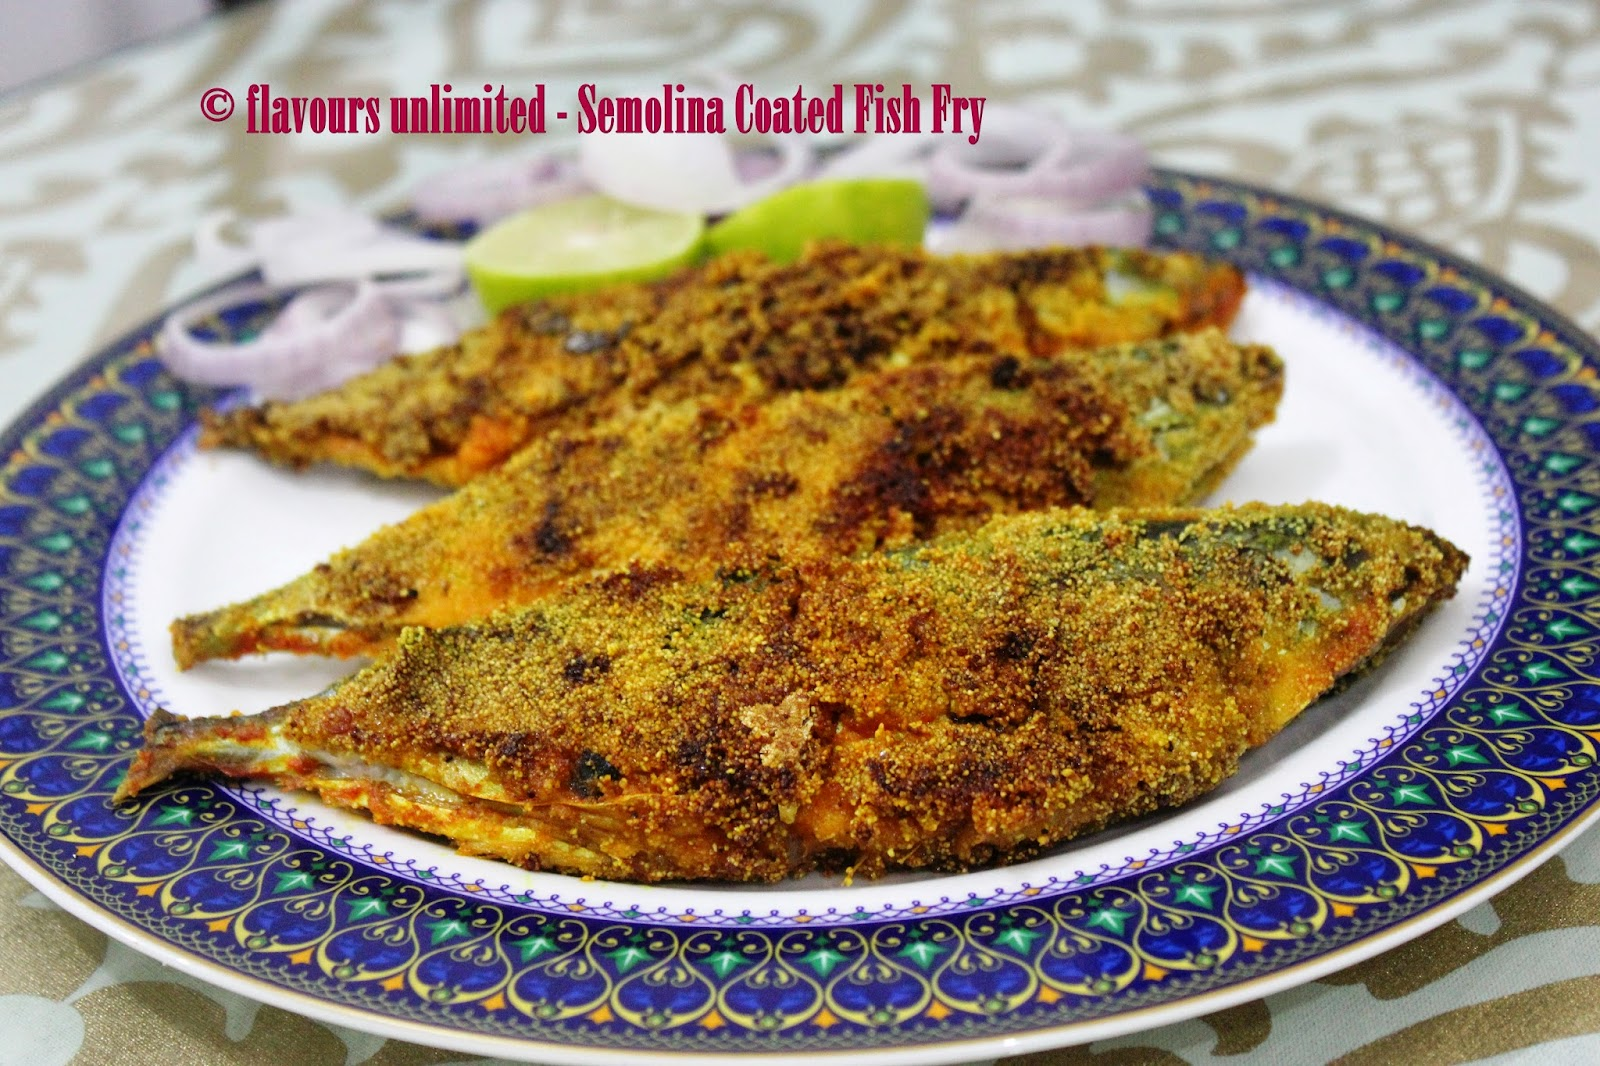 ... Style Rava/Semolina Coated Bangda/Mackerel and Surmai/King Fish Fry